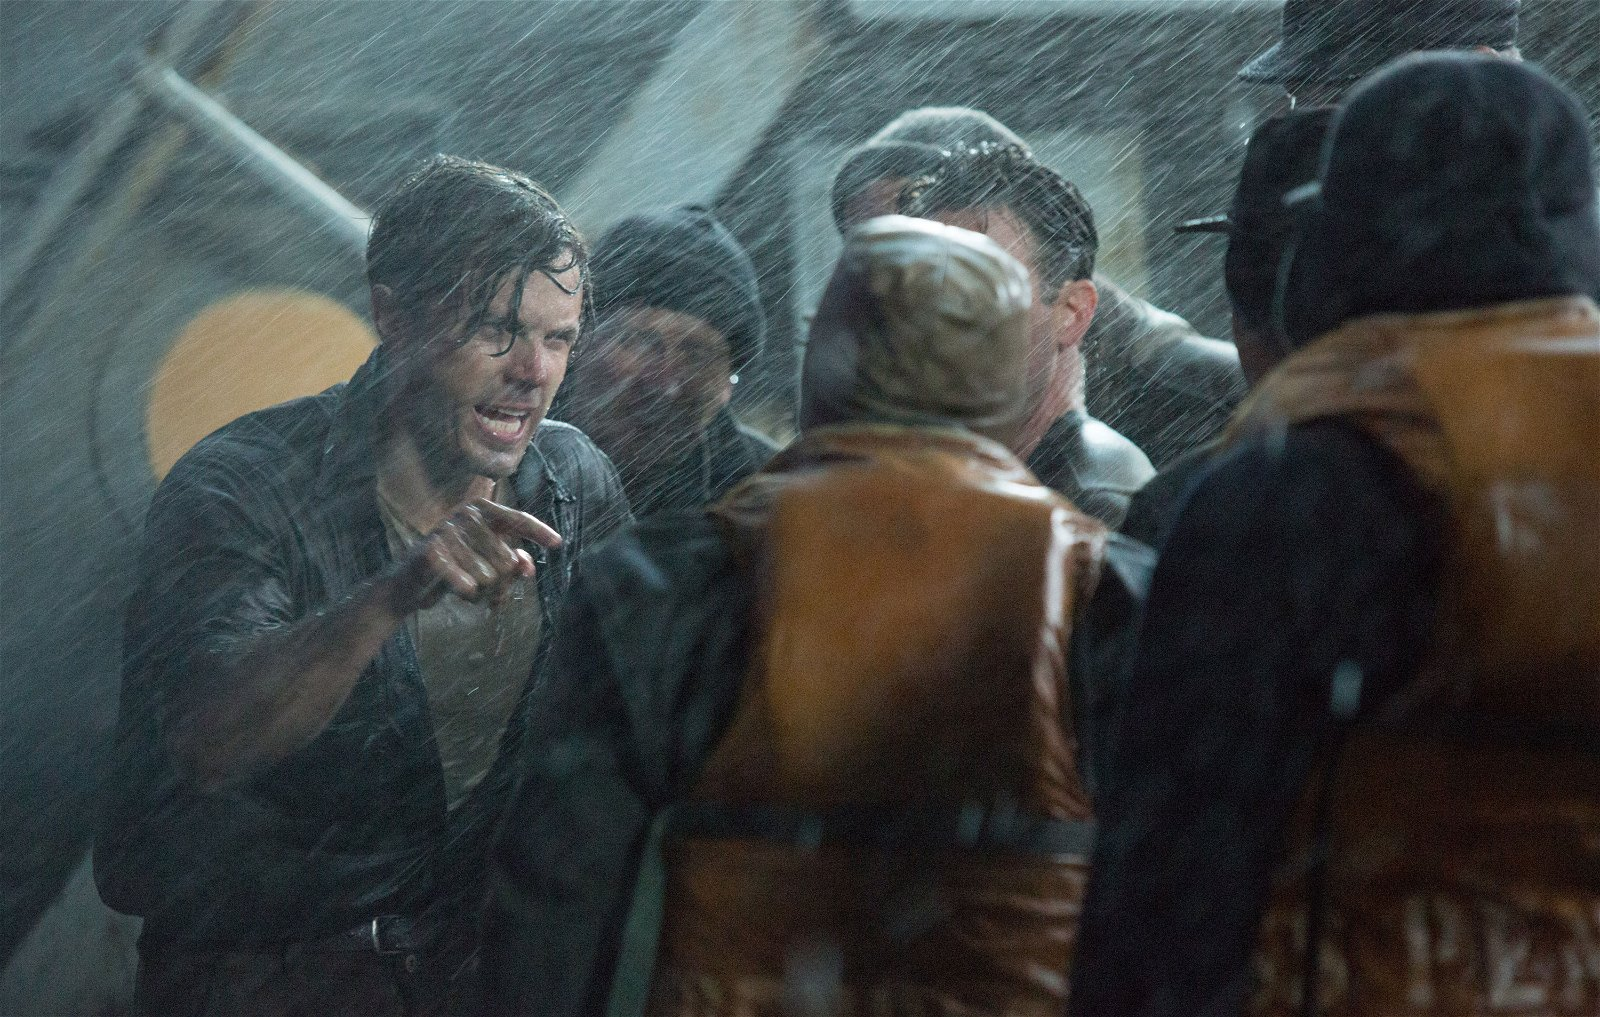 The Finest Hours Insert 1